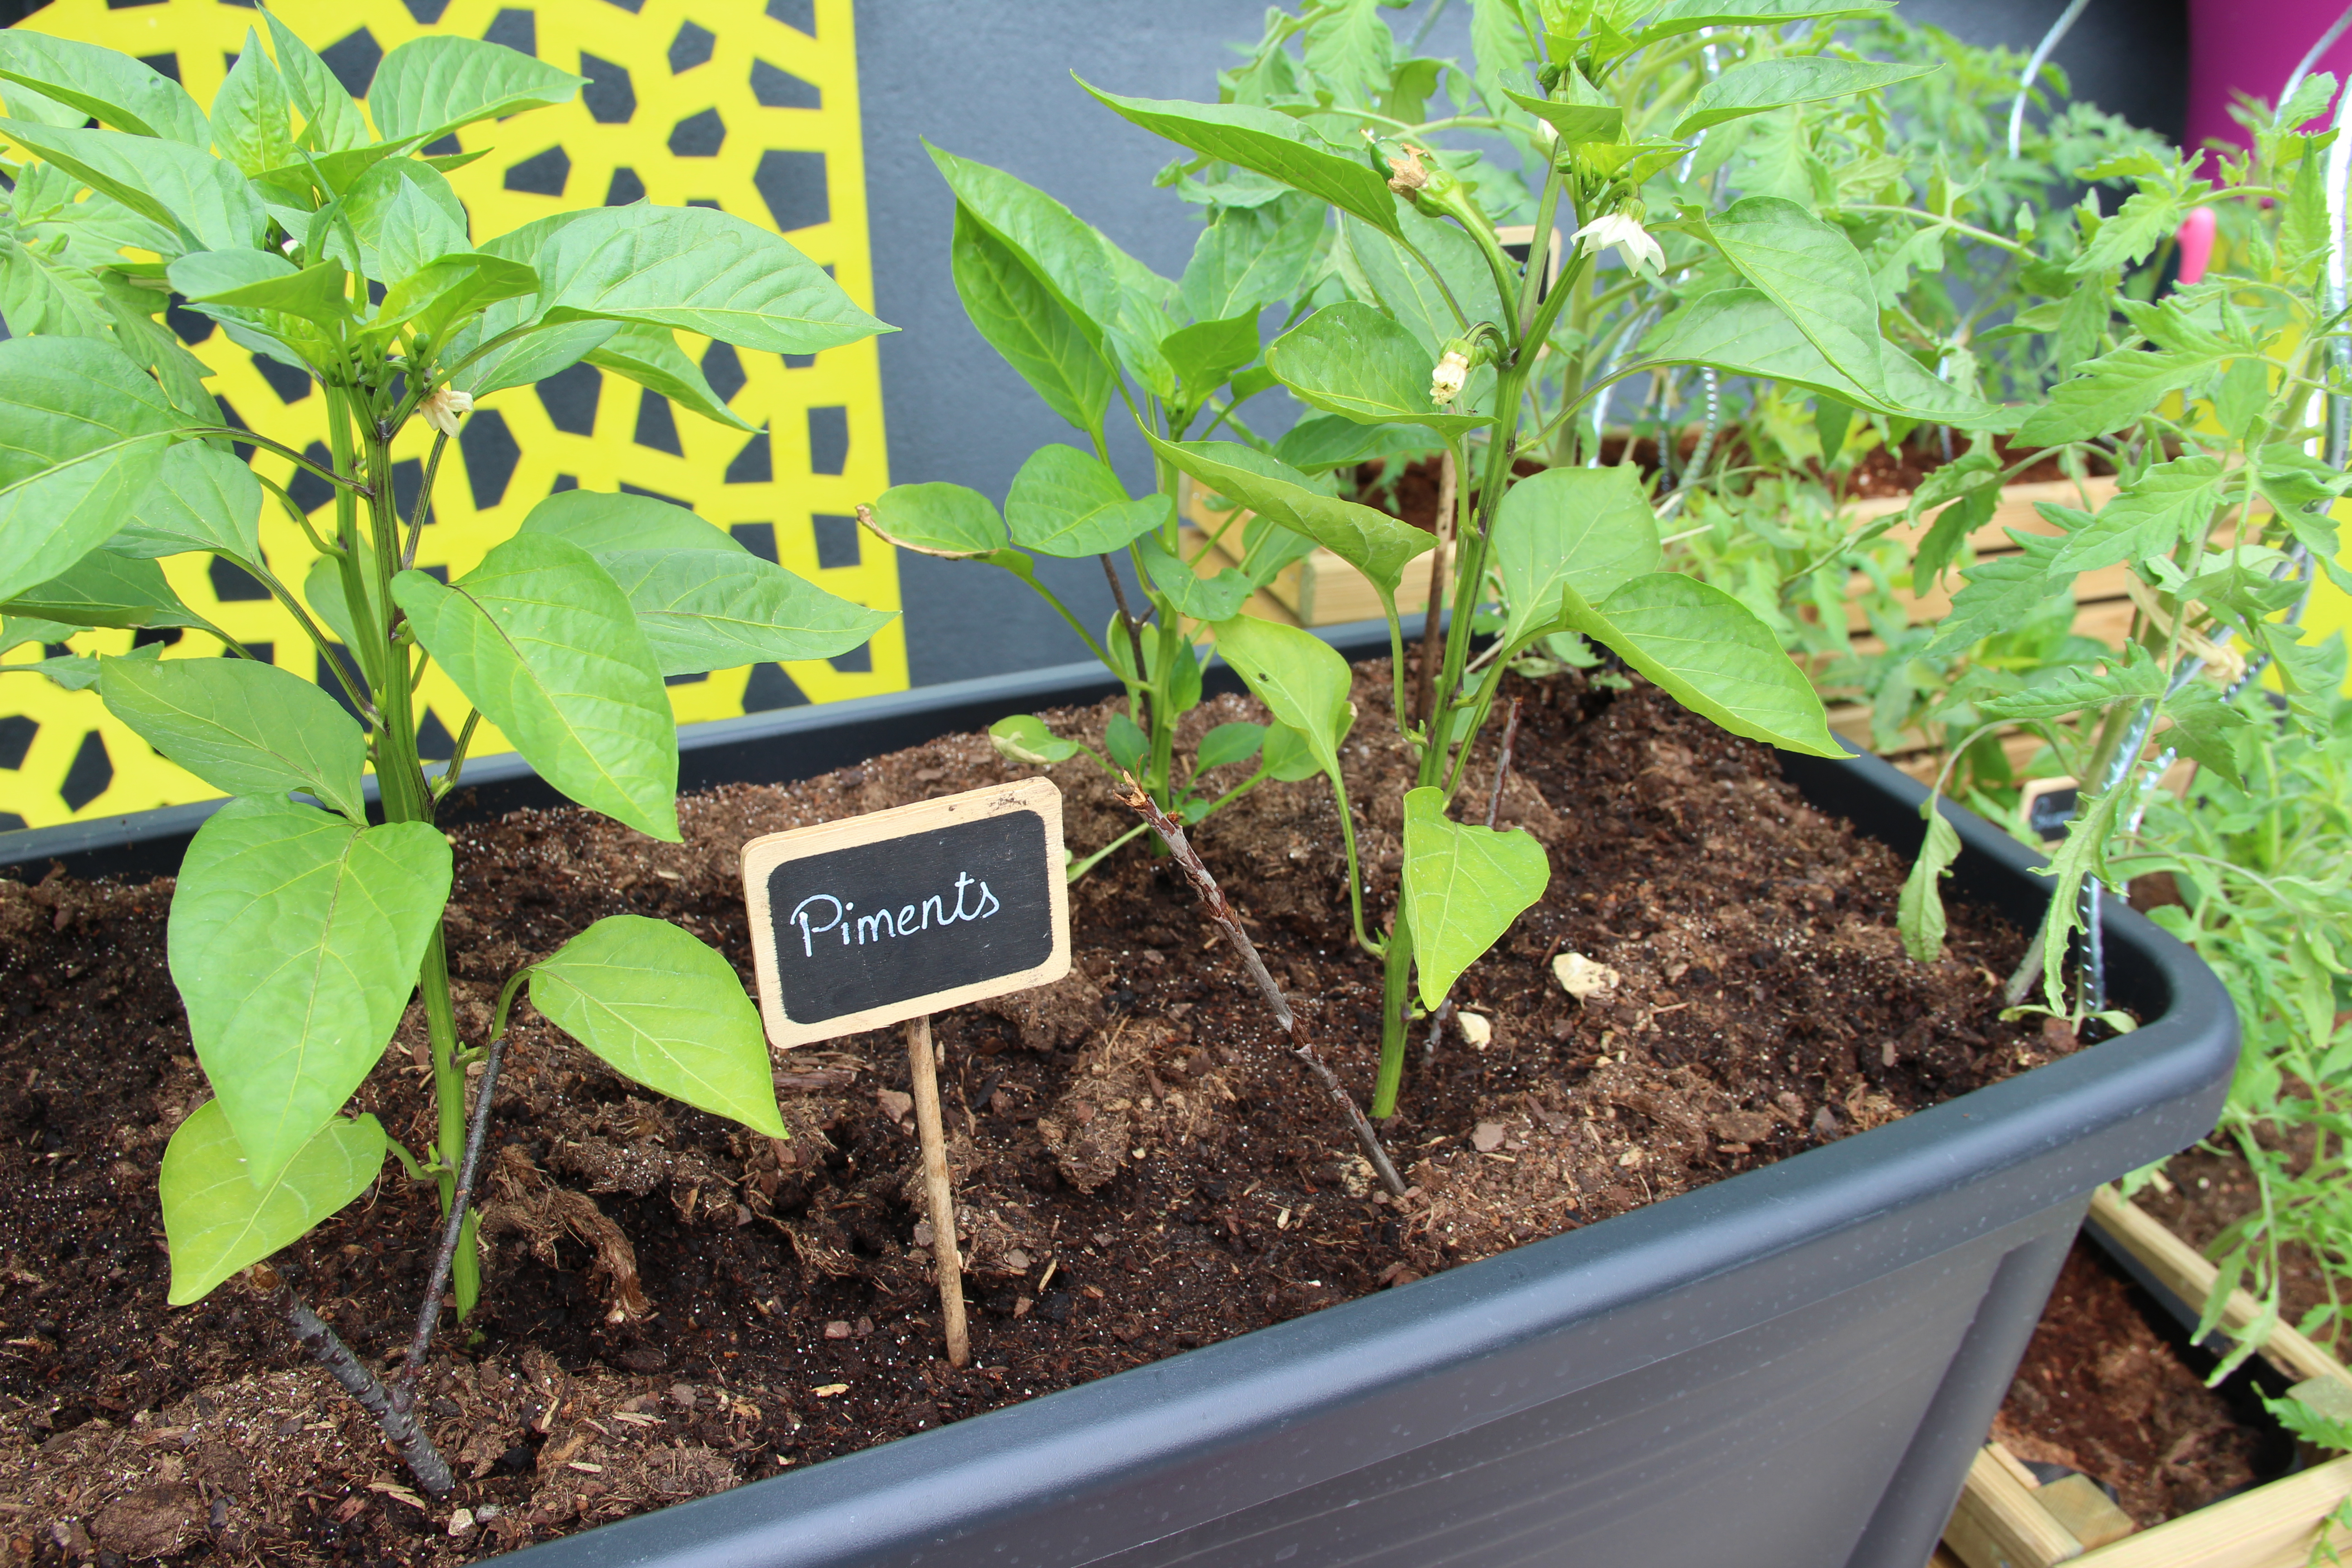 piments-blog-delbard-potager-facile